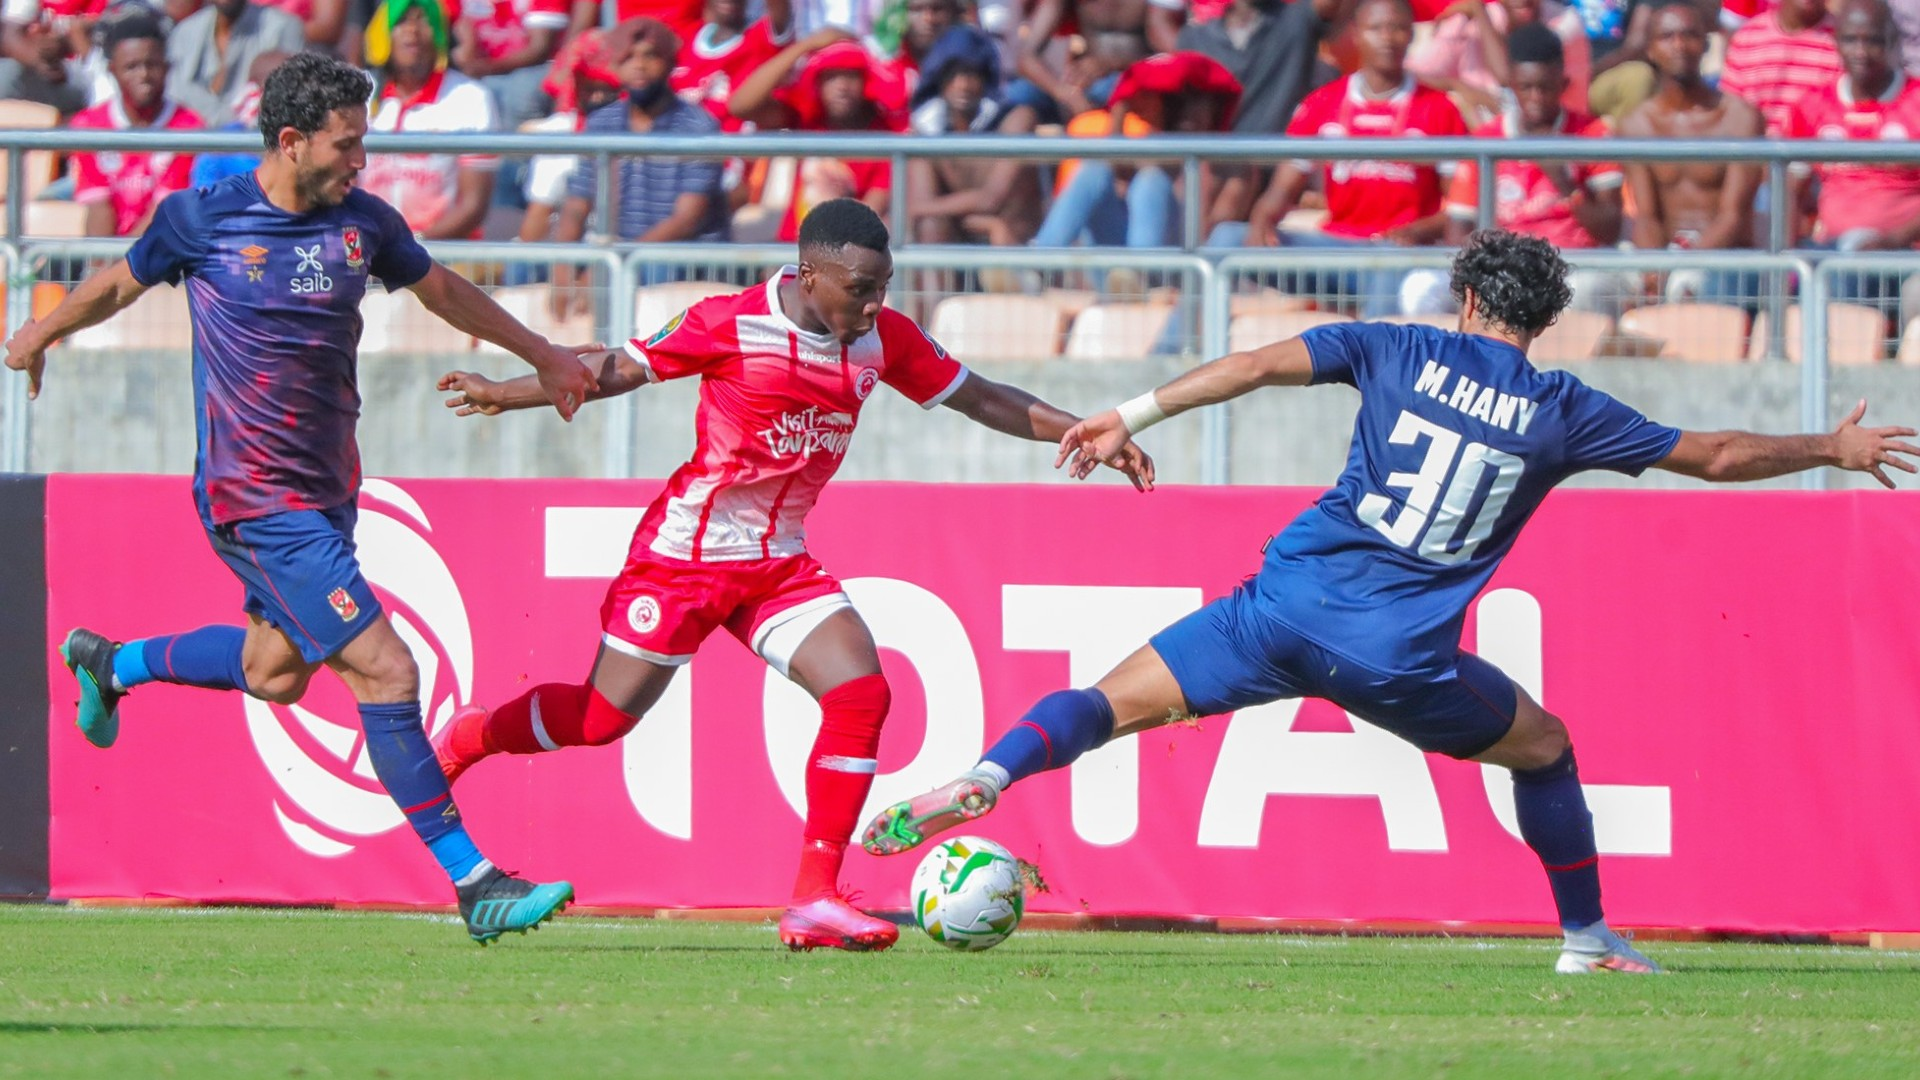 Caf Champions League: Simba SC will go a long way if they play as Miquissone – Samatta